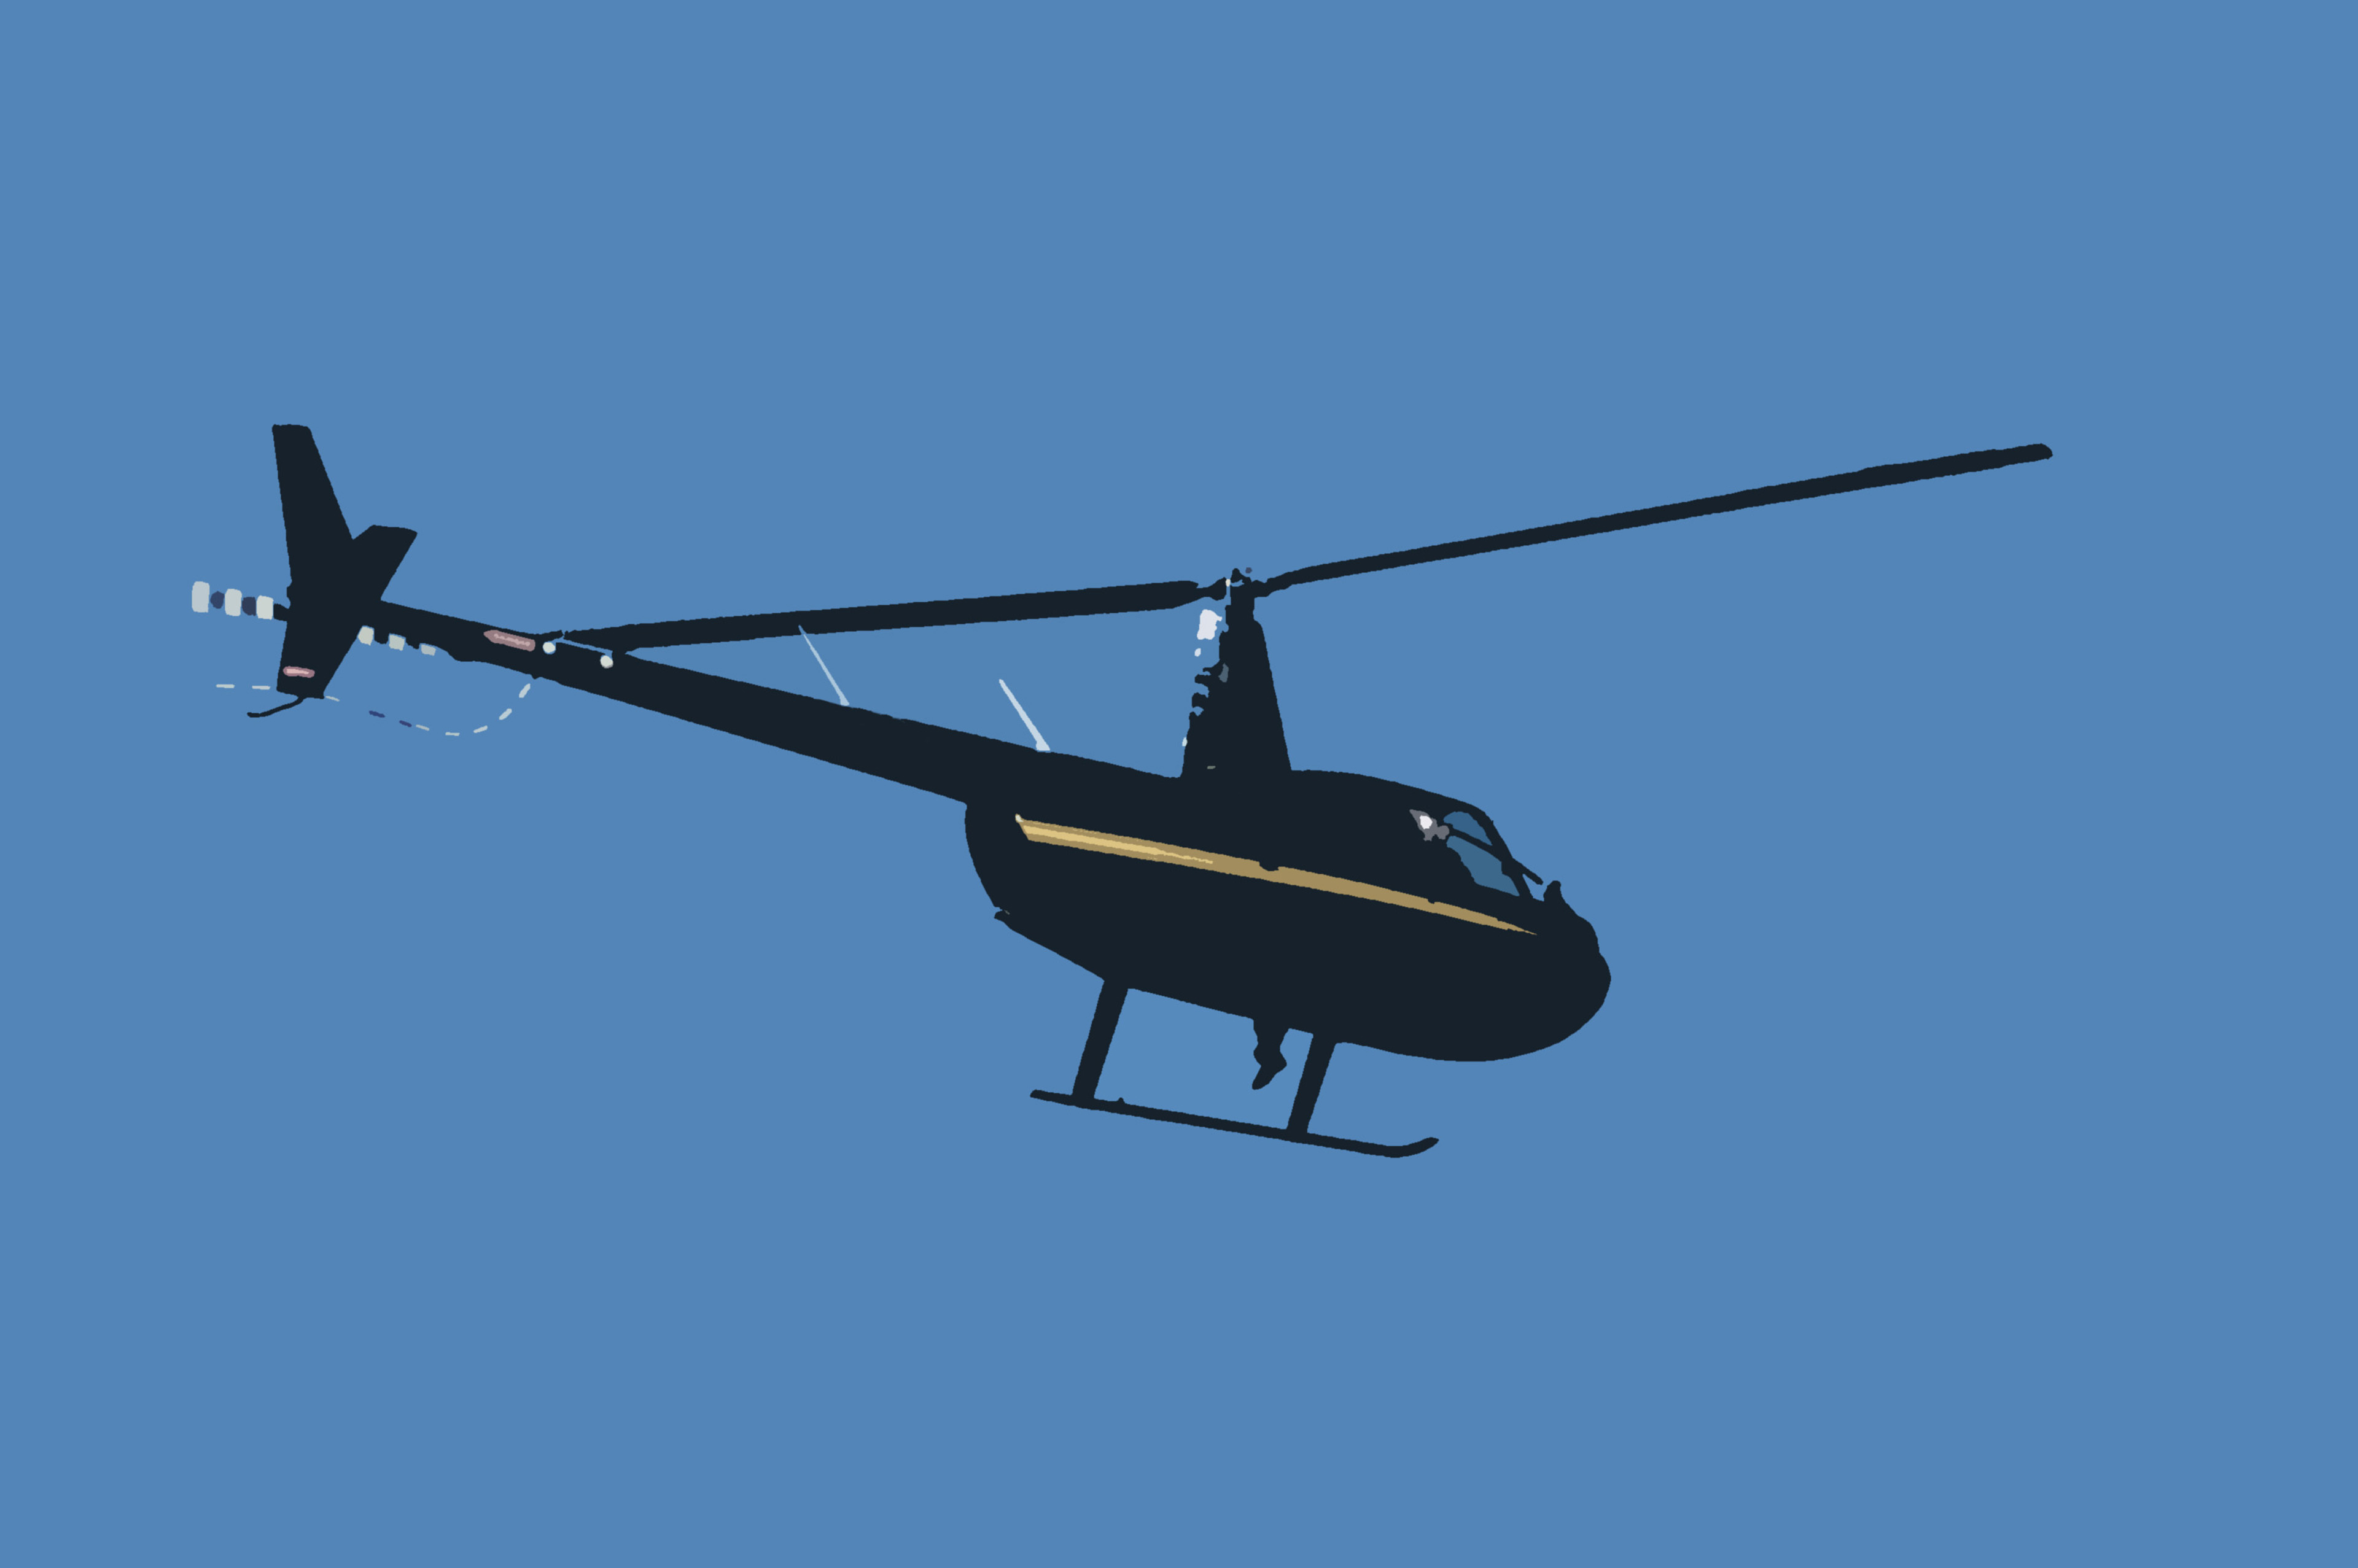 a review of black helicopters in the sky eli vetcherebin Sky rover best choice you should review the terms & conditions for a more detailed description as well as service (products not sold by walmartcom.